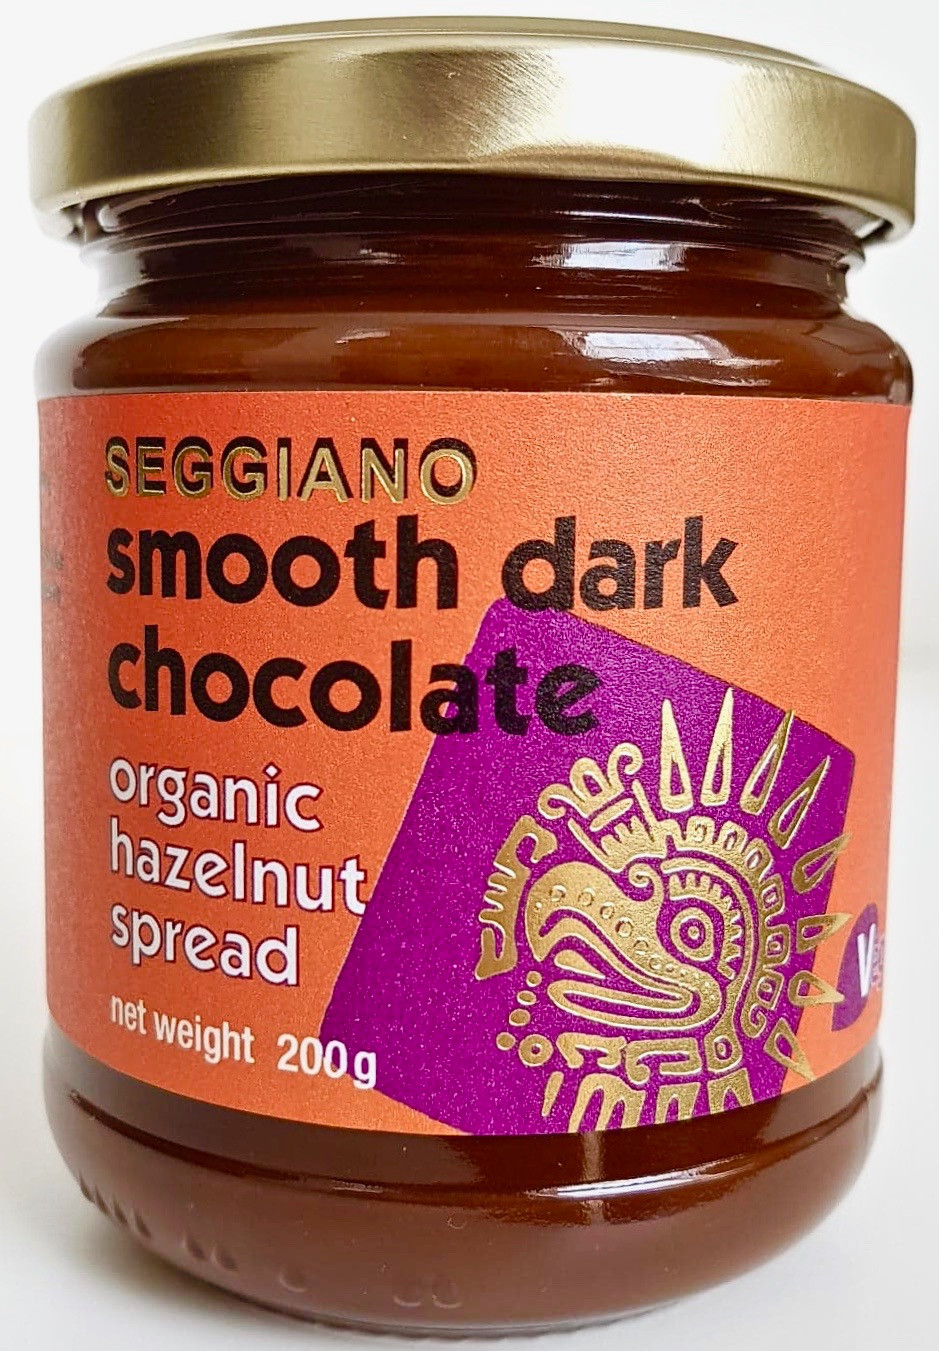 Seggiano Vegan Dark Chocolate Hazelnut Spread